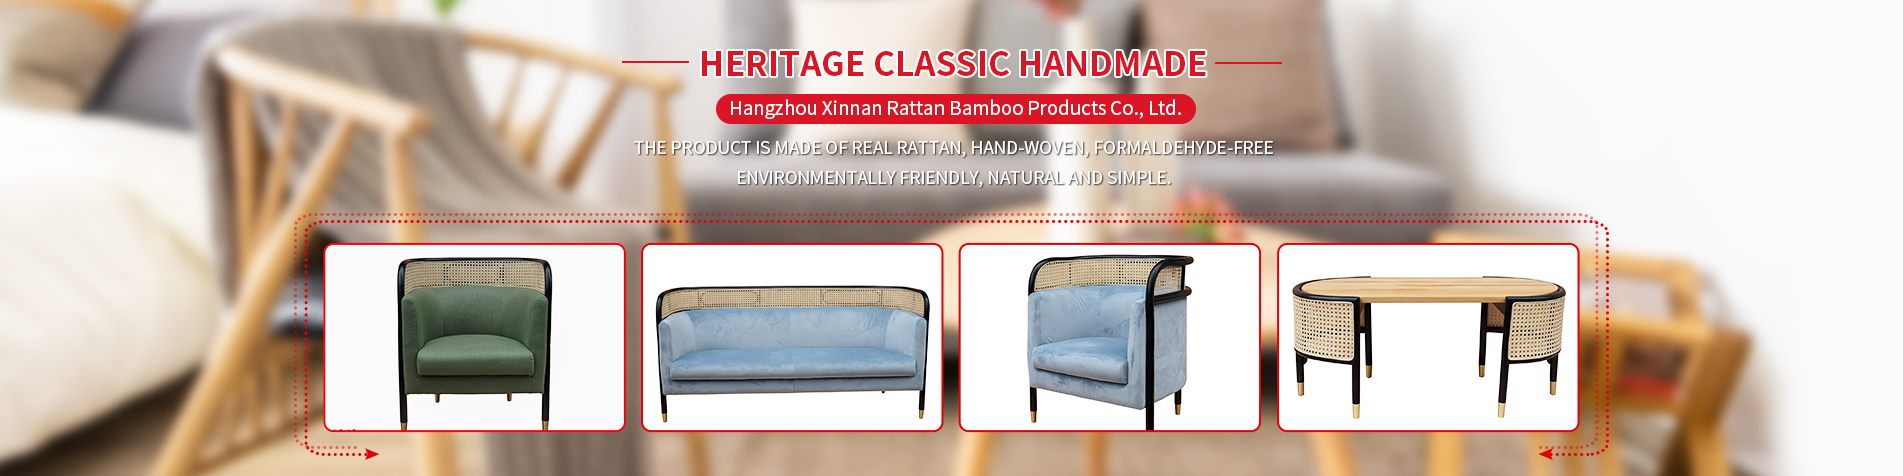 Hangzhou Xinnan Rattan Bamboo Products Co., Ltd.